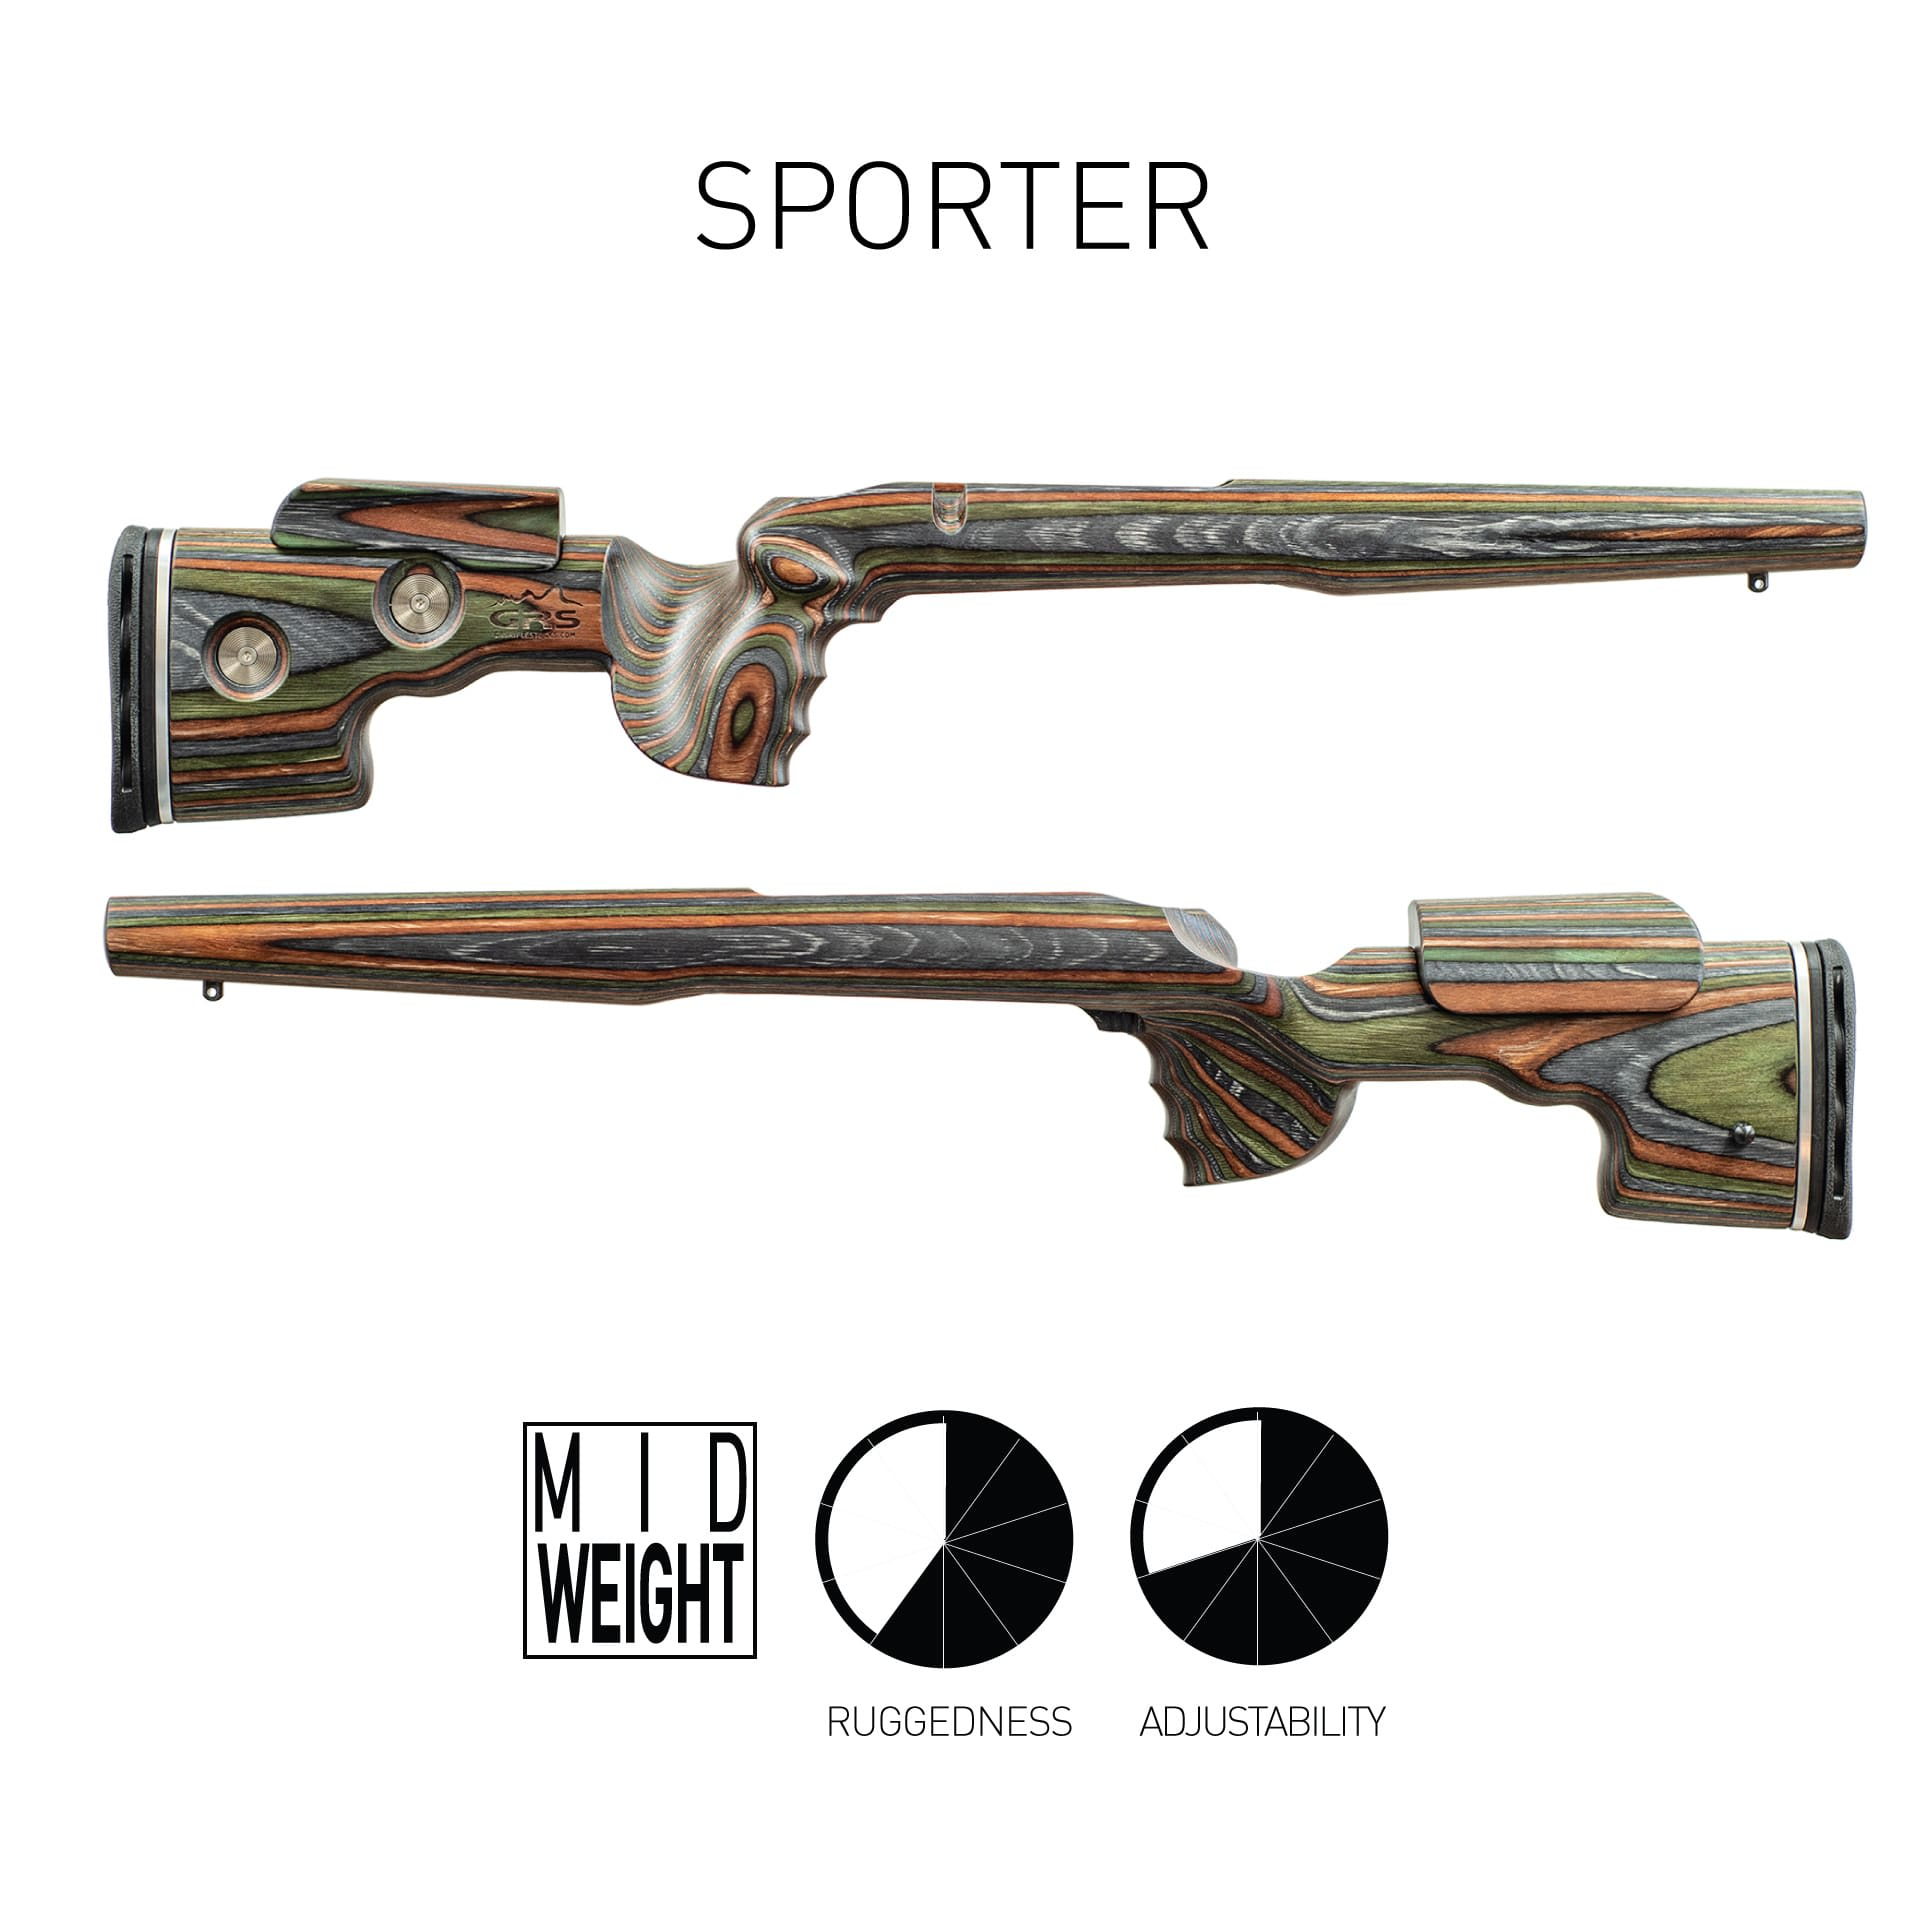 Photo of GRS Sporter, both sides, with rating